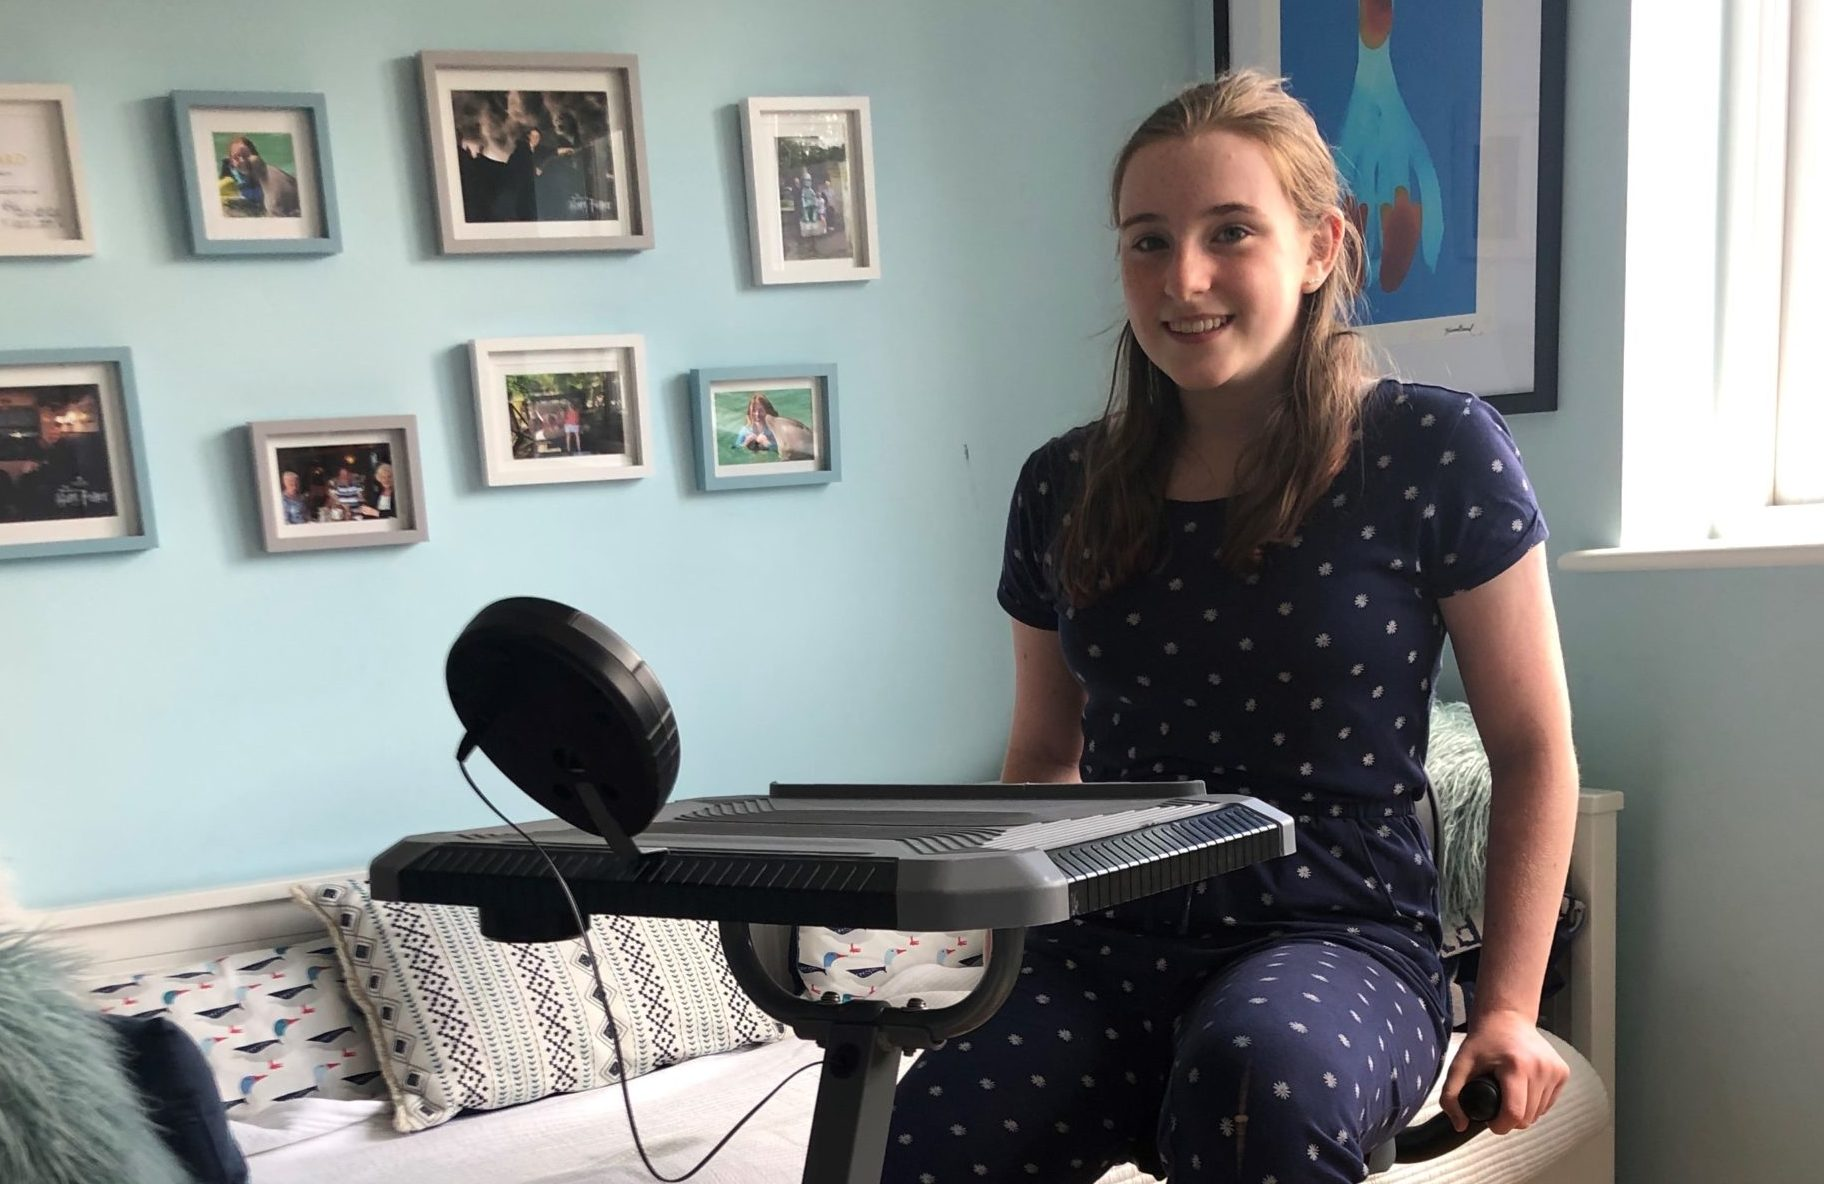 Hannah Topen is virtually cycling from Wimbledon to Dundee to raise money for NHS Charities.